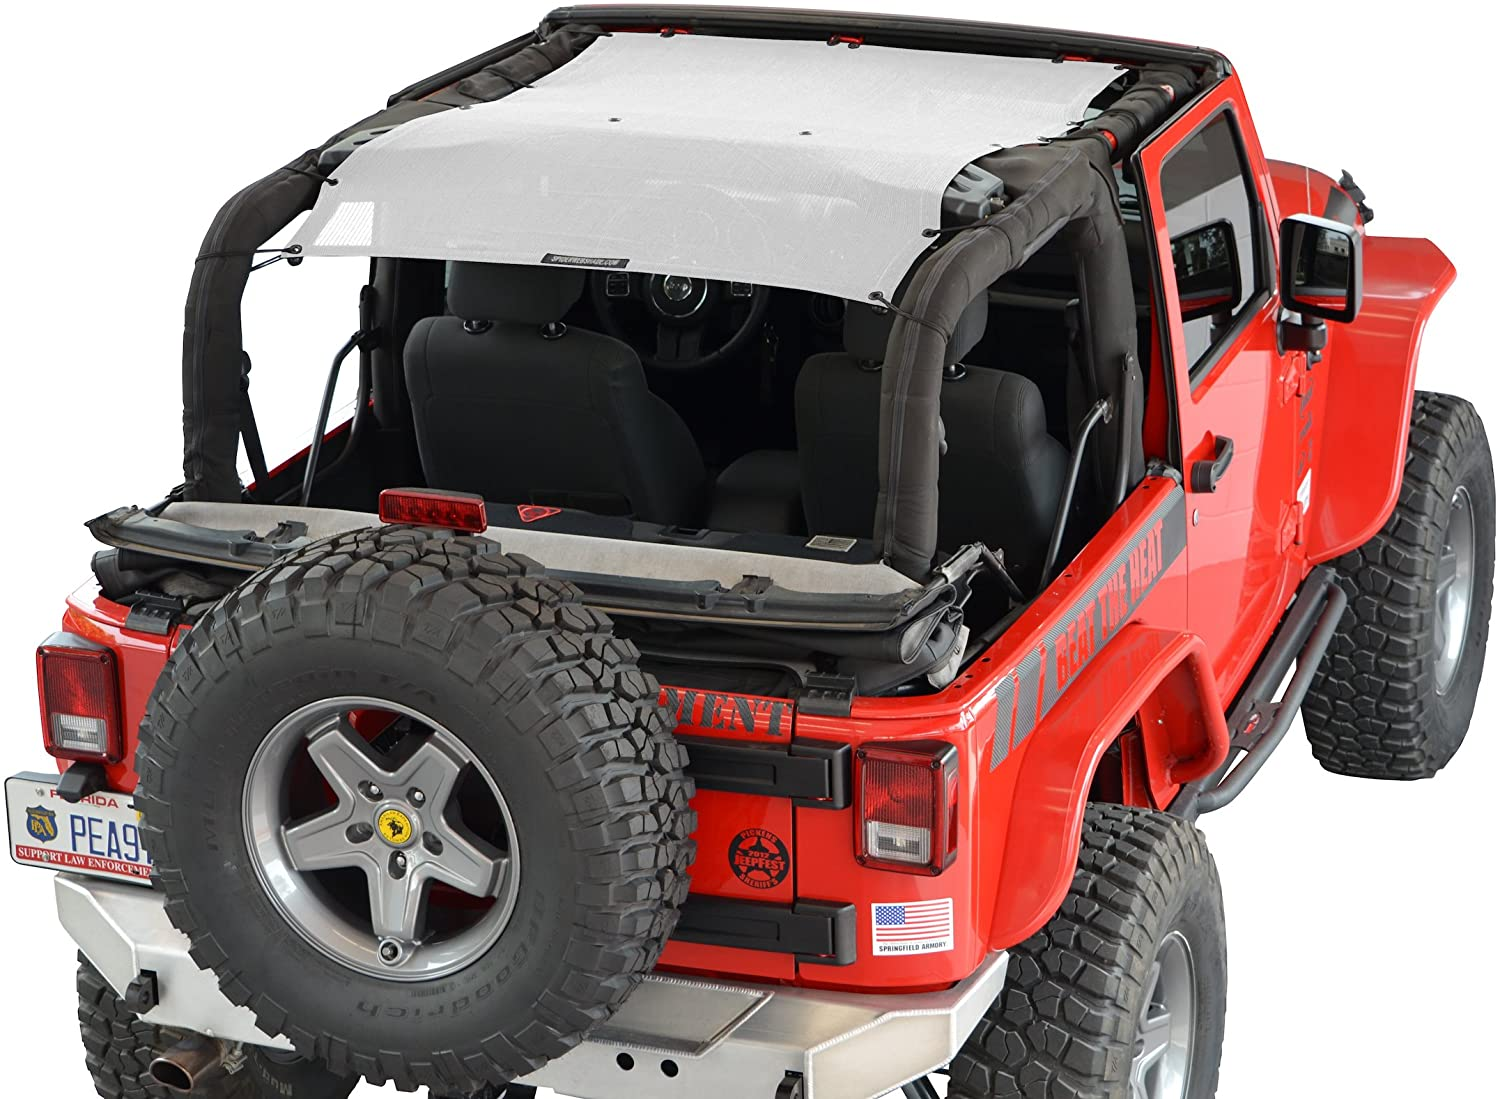 SPIDERWEBSHADE compatible with Jeep Wrangler Mesh Shade Top Sunshade UV Protection Accessory USA Made with 10 Year Warranty for Your JK 2-Door (2007-2018) in White